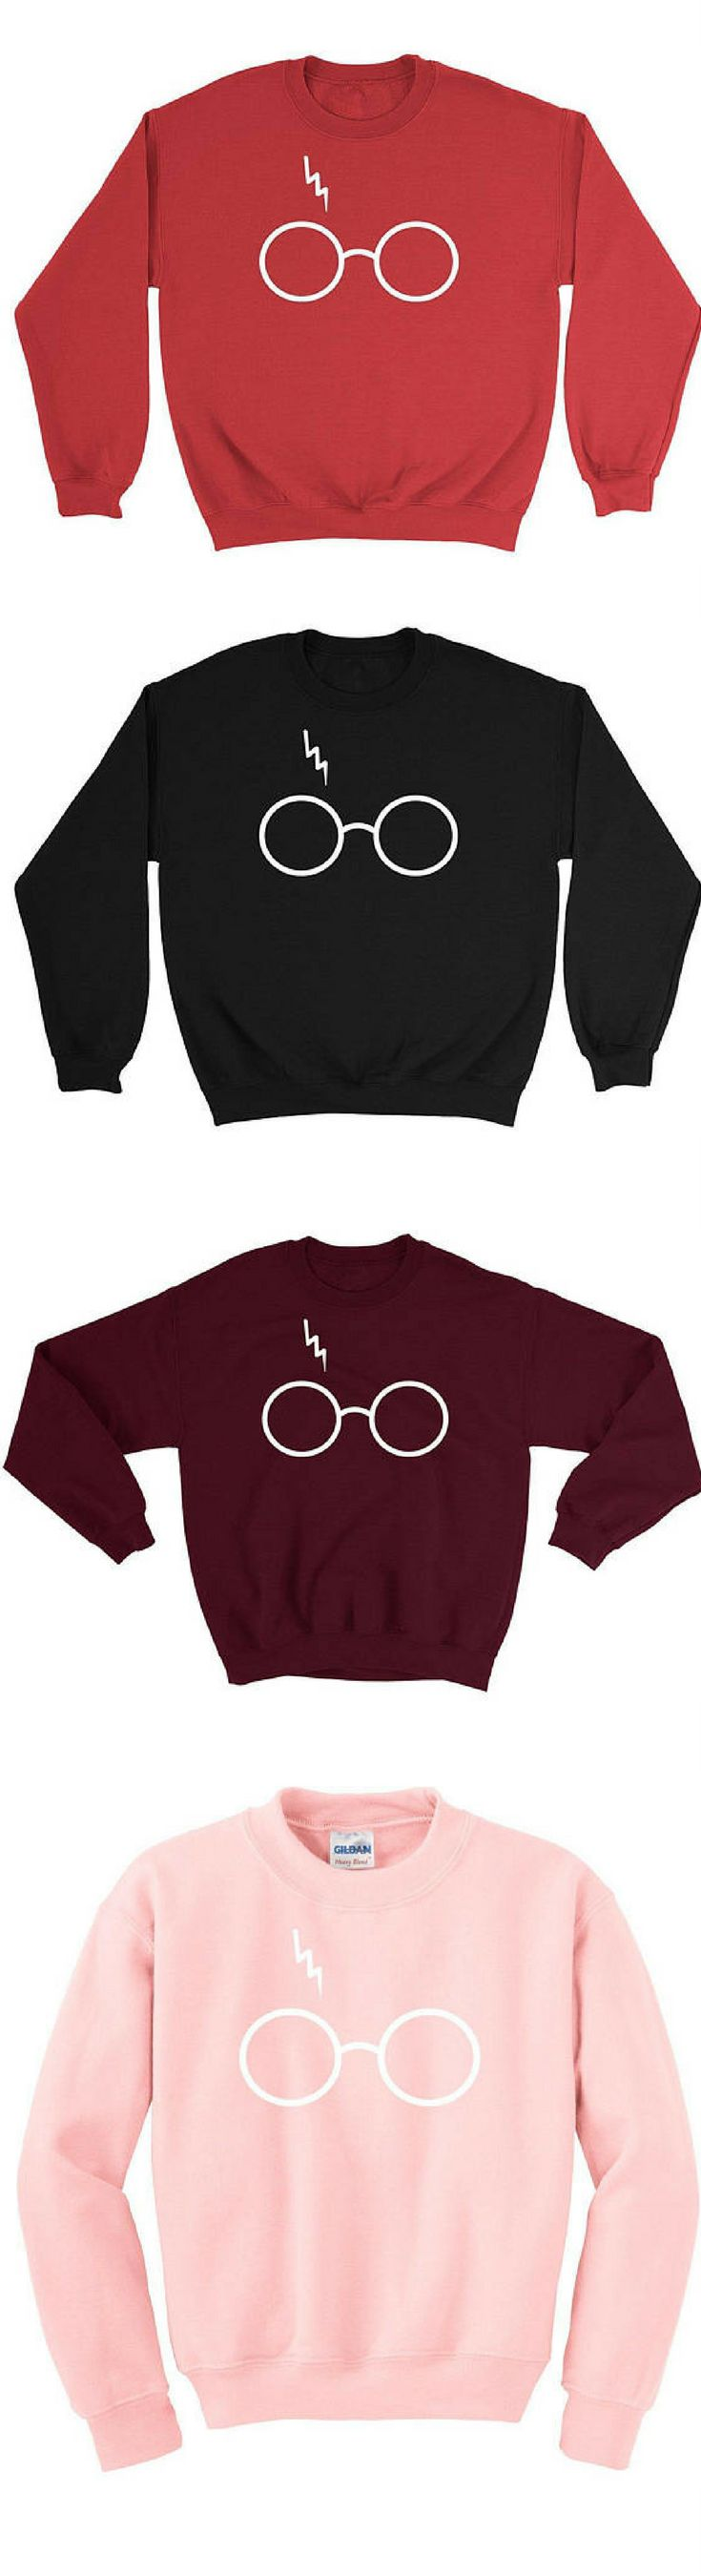 Best seller on Etsy! Harry Potter Sweatshirt Sweater - Glasses with Lightning Bolt Scar - Unisex - Awesome Hogwarts Sweatshirt - Super Soft Fleece #Harrypotter #sweatshirts #bestseller #giftideas #GIFTIDEA #gift #christmasgifts #christmas harry potter | harry potter tattoo | harry potter funny | harry potter party | harry potter costume | Harry Potter Film | Harry Potter | Harry Potter Hub | Harry Potter | Harry Potter...Always | ⚡Harry Potter⚡ |